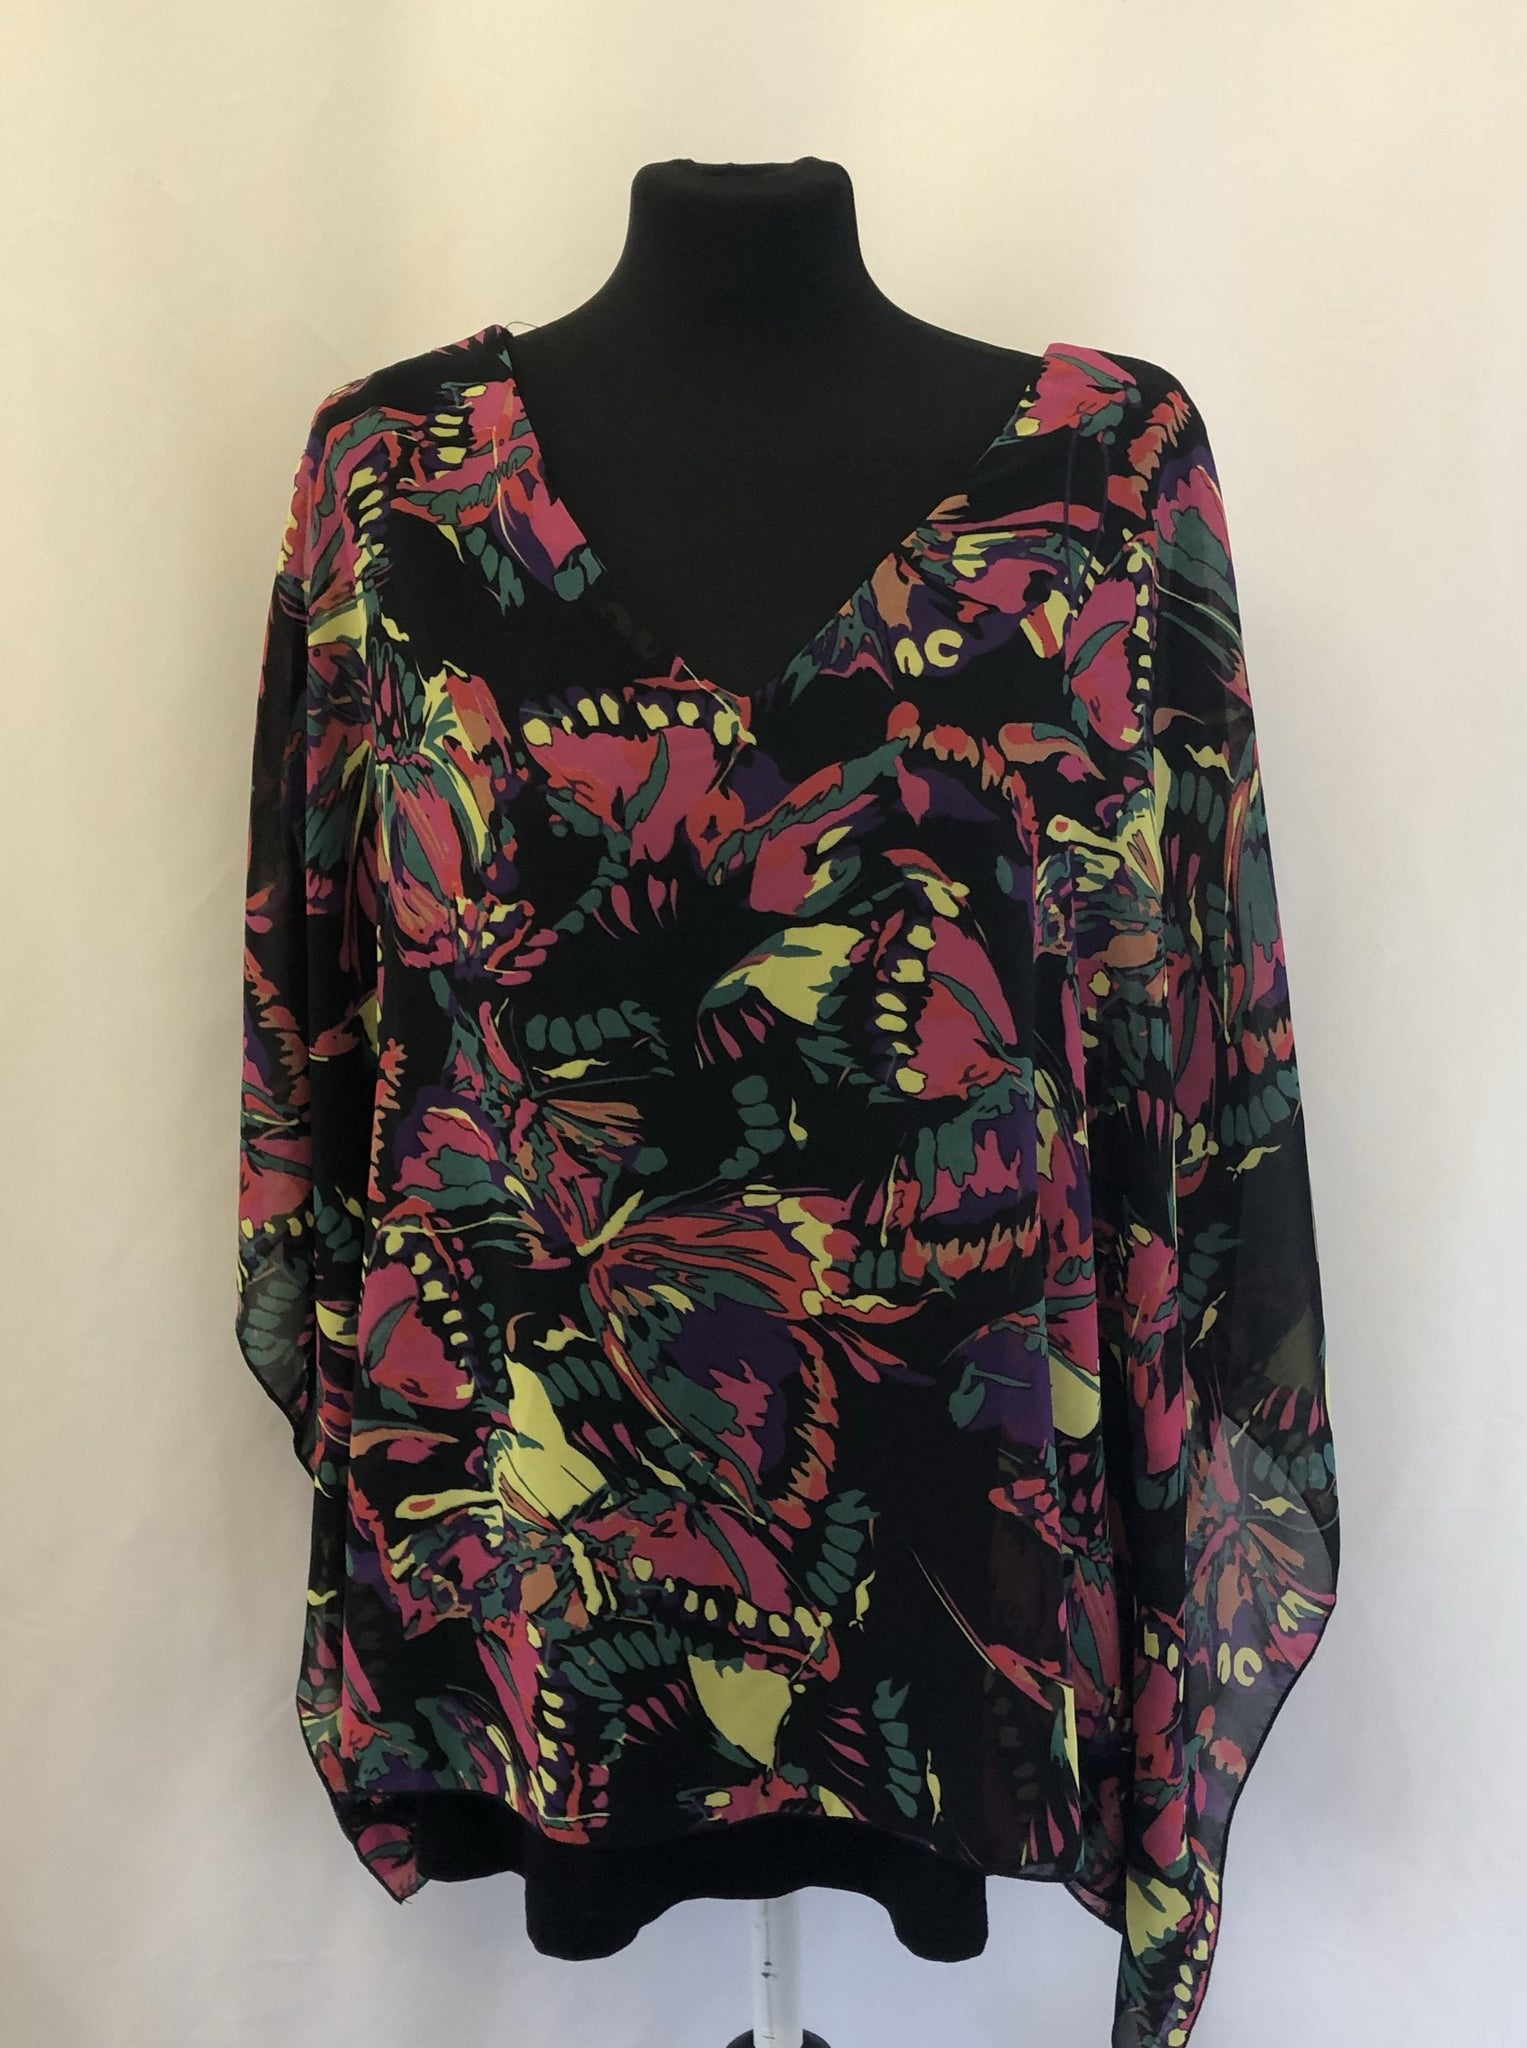 XL Klass Vibrant Black Pink Sheer Top Size 18